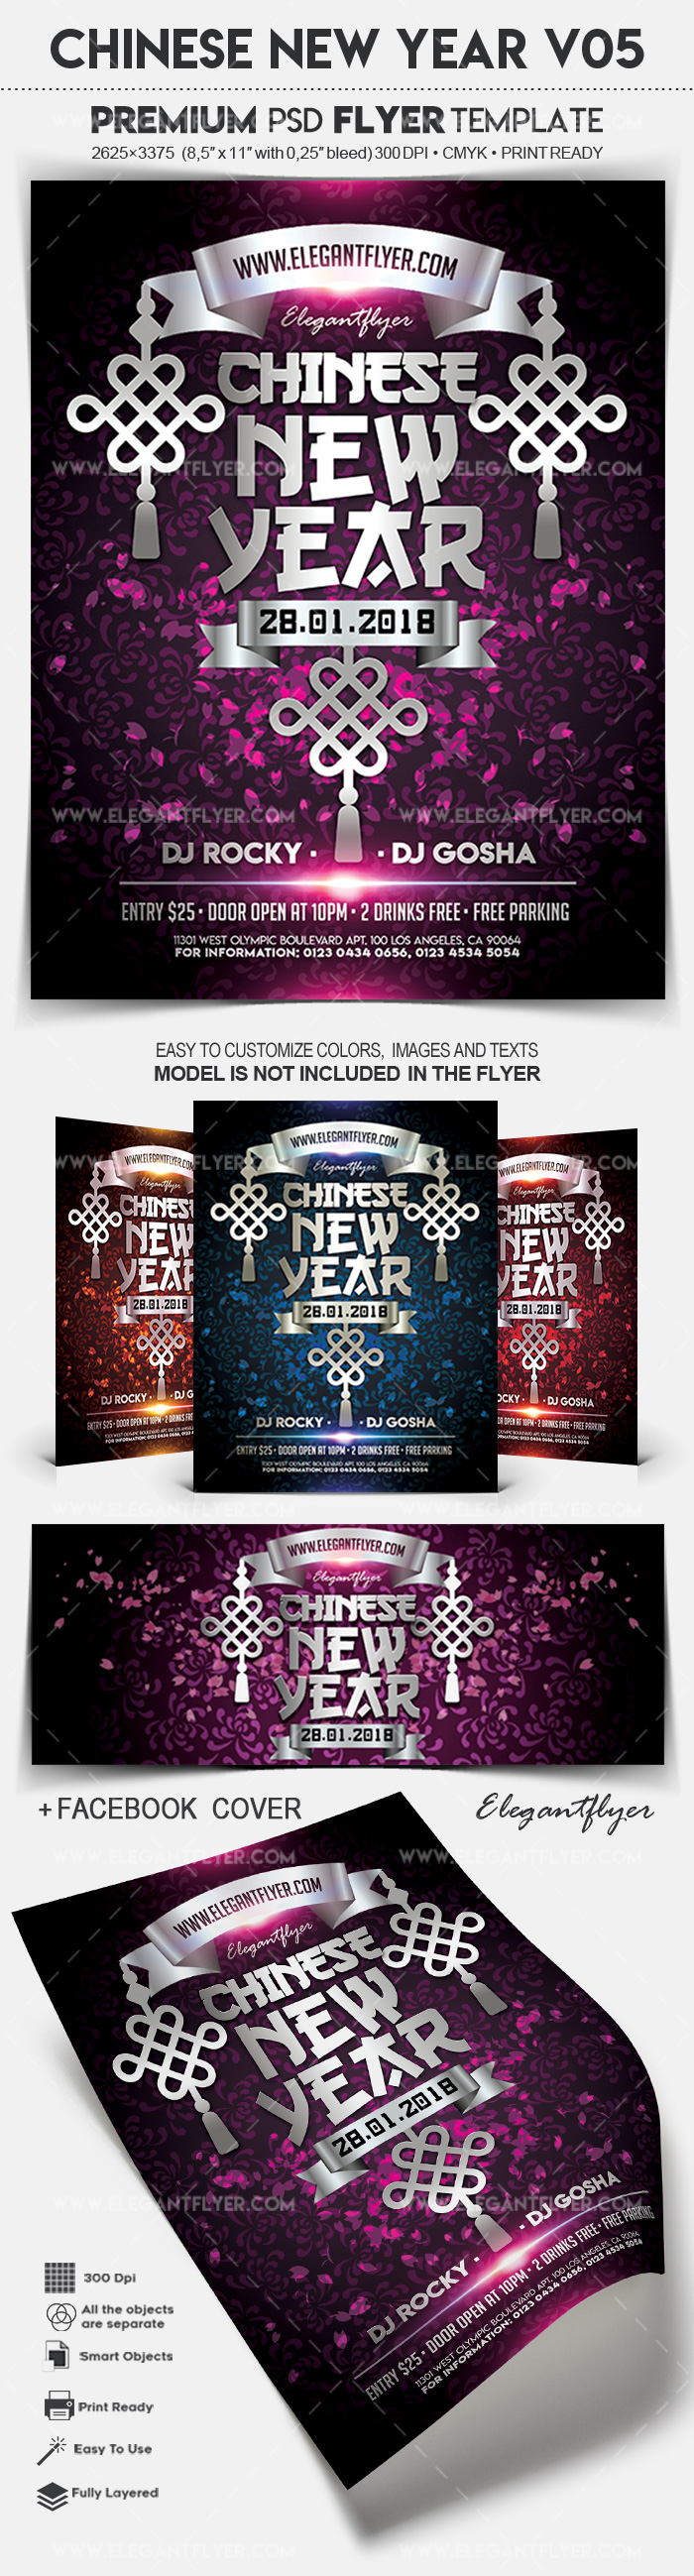 Chinese New Year V05 – Flyer PSD Template + Facebook Cover